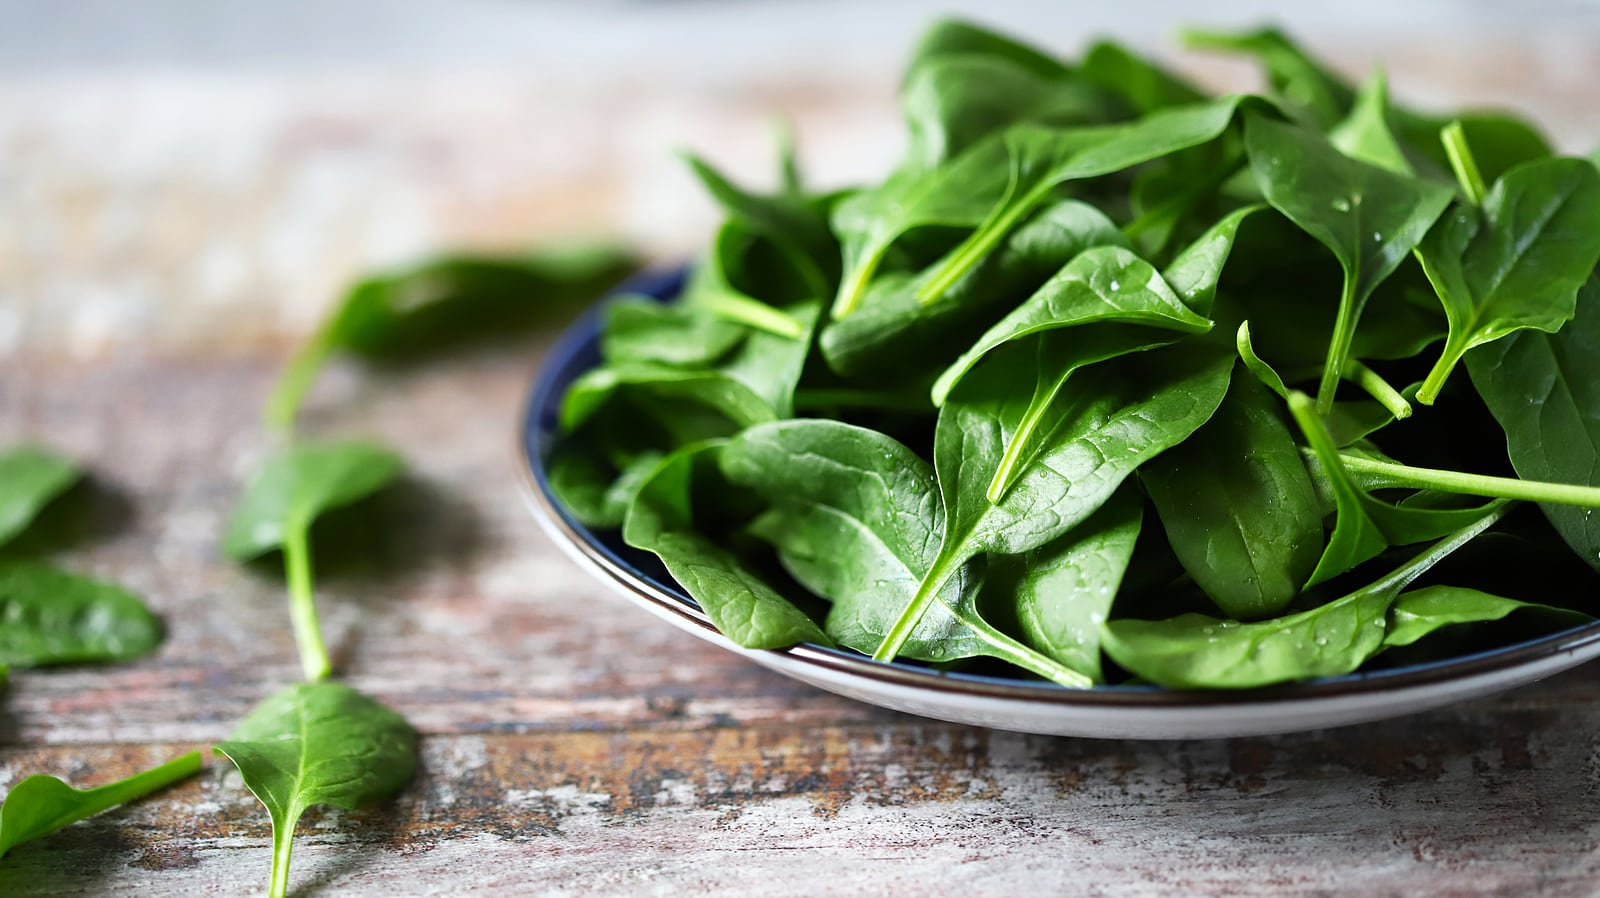 spinach - Top 7 Superfoods to Add to your Smoothie